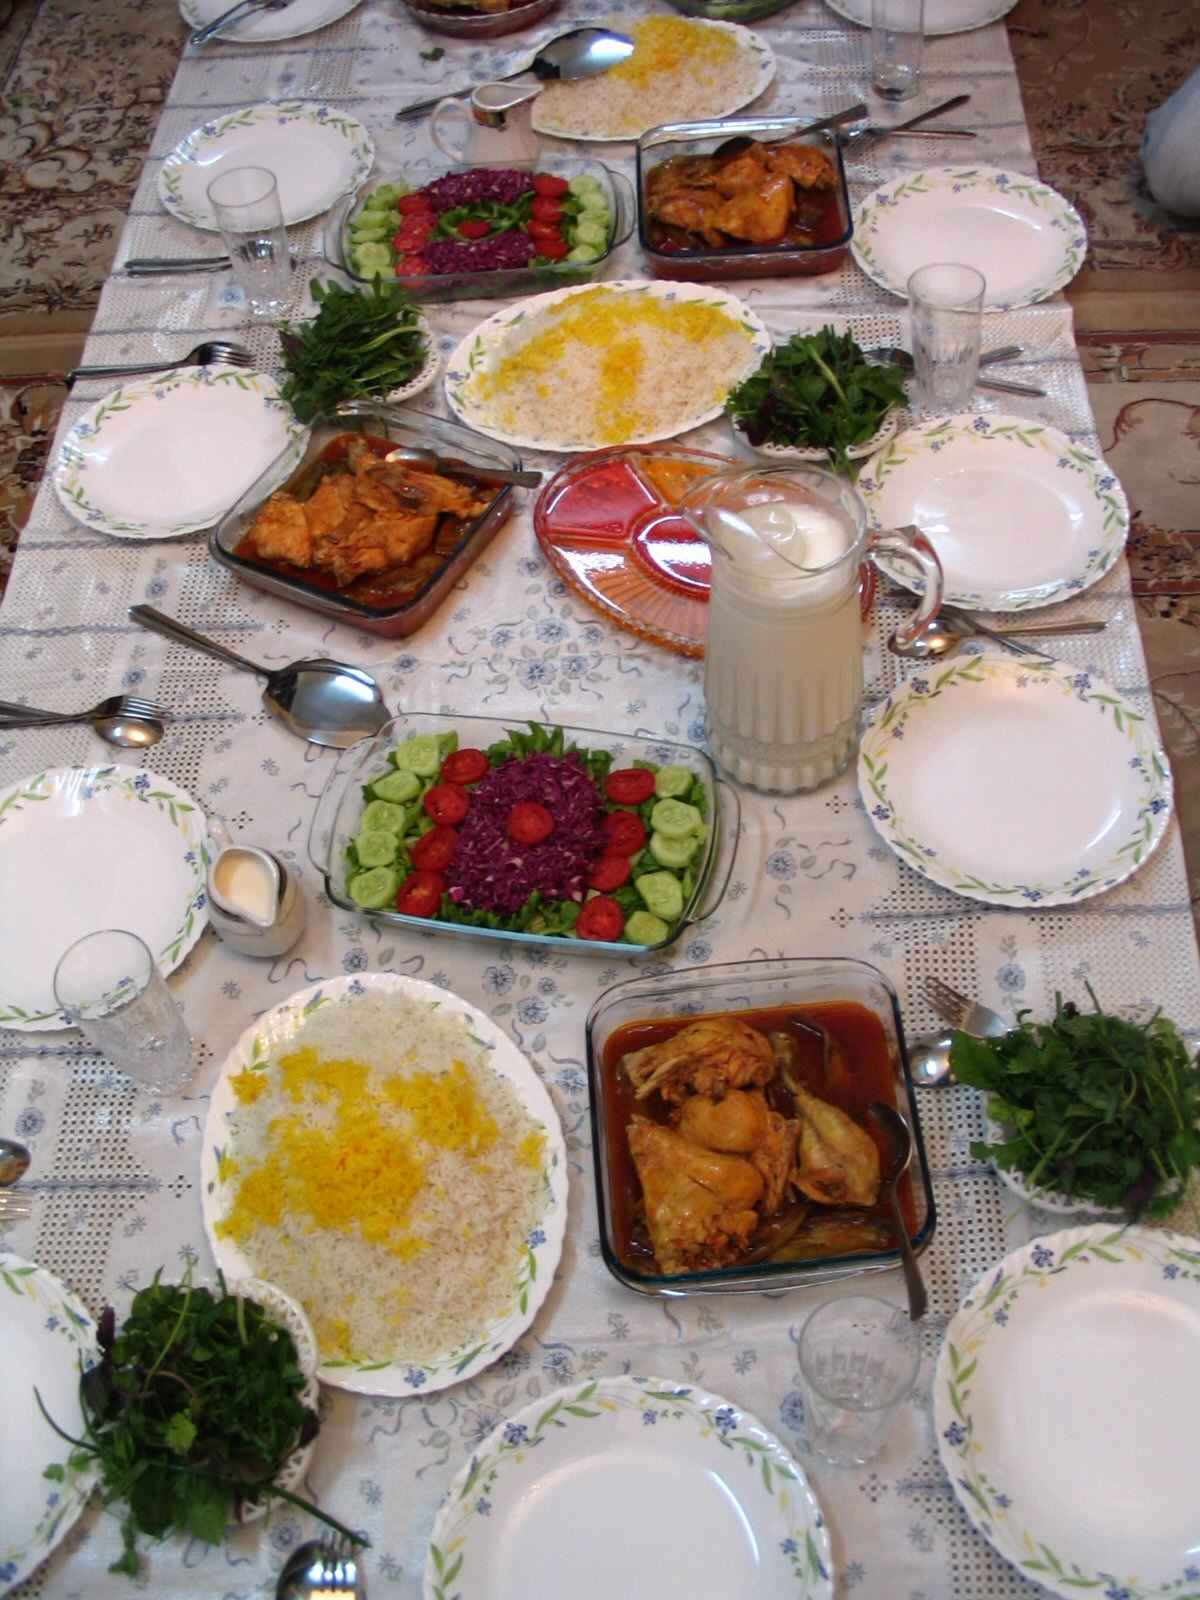 Description persian cuisine